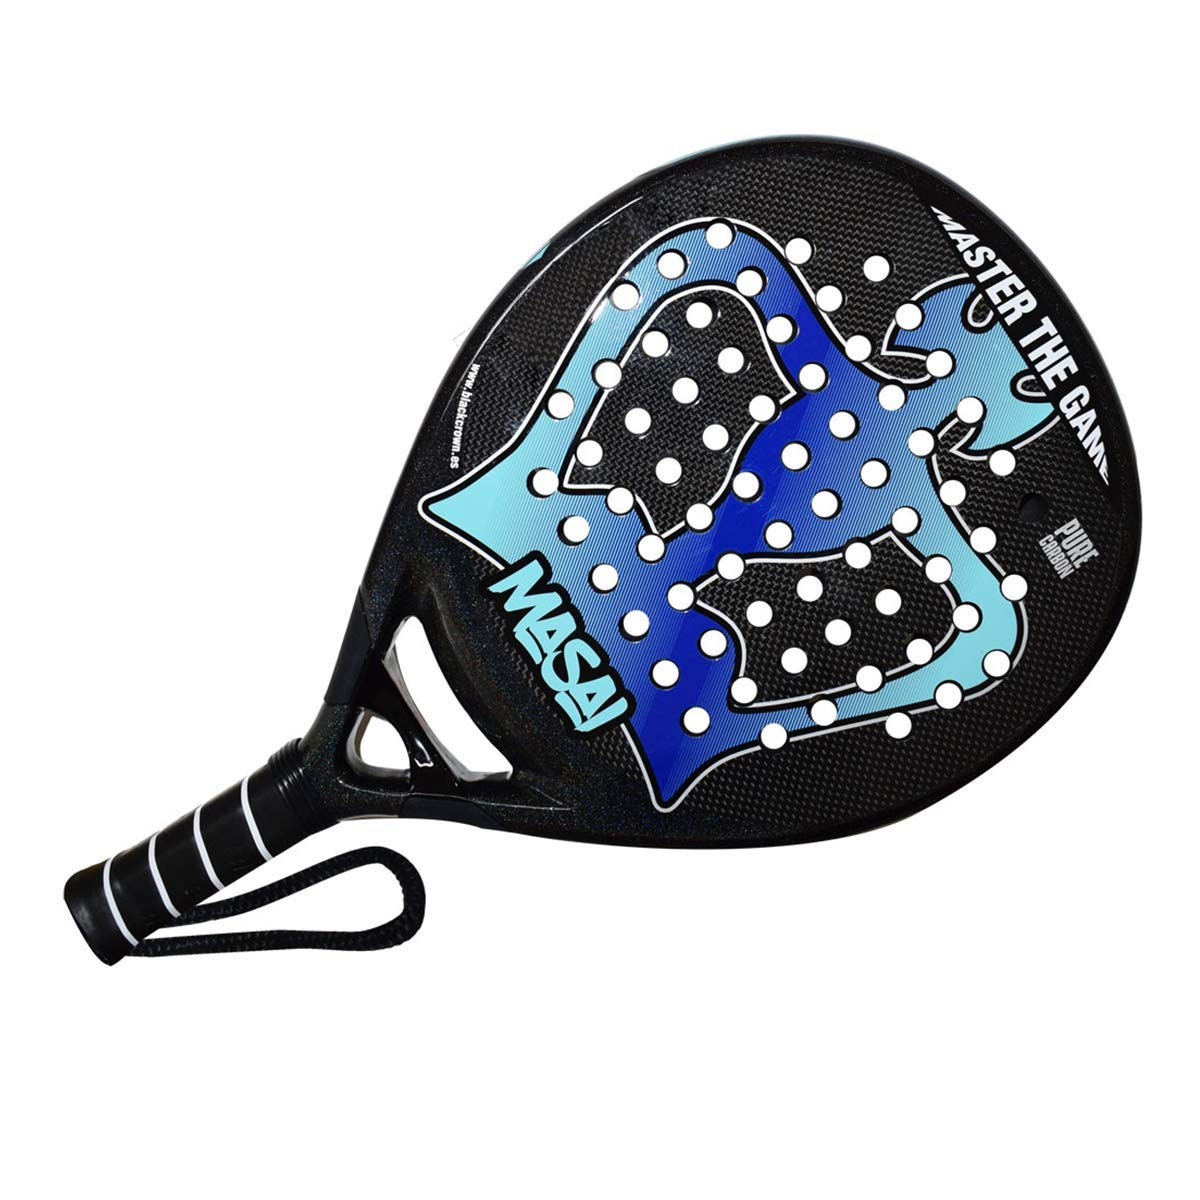 Amazon.com: Black Crown Masai - Pala de pádel para tenis de ...